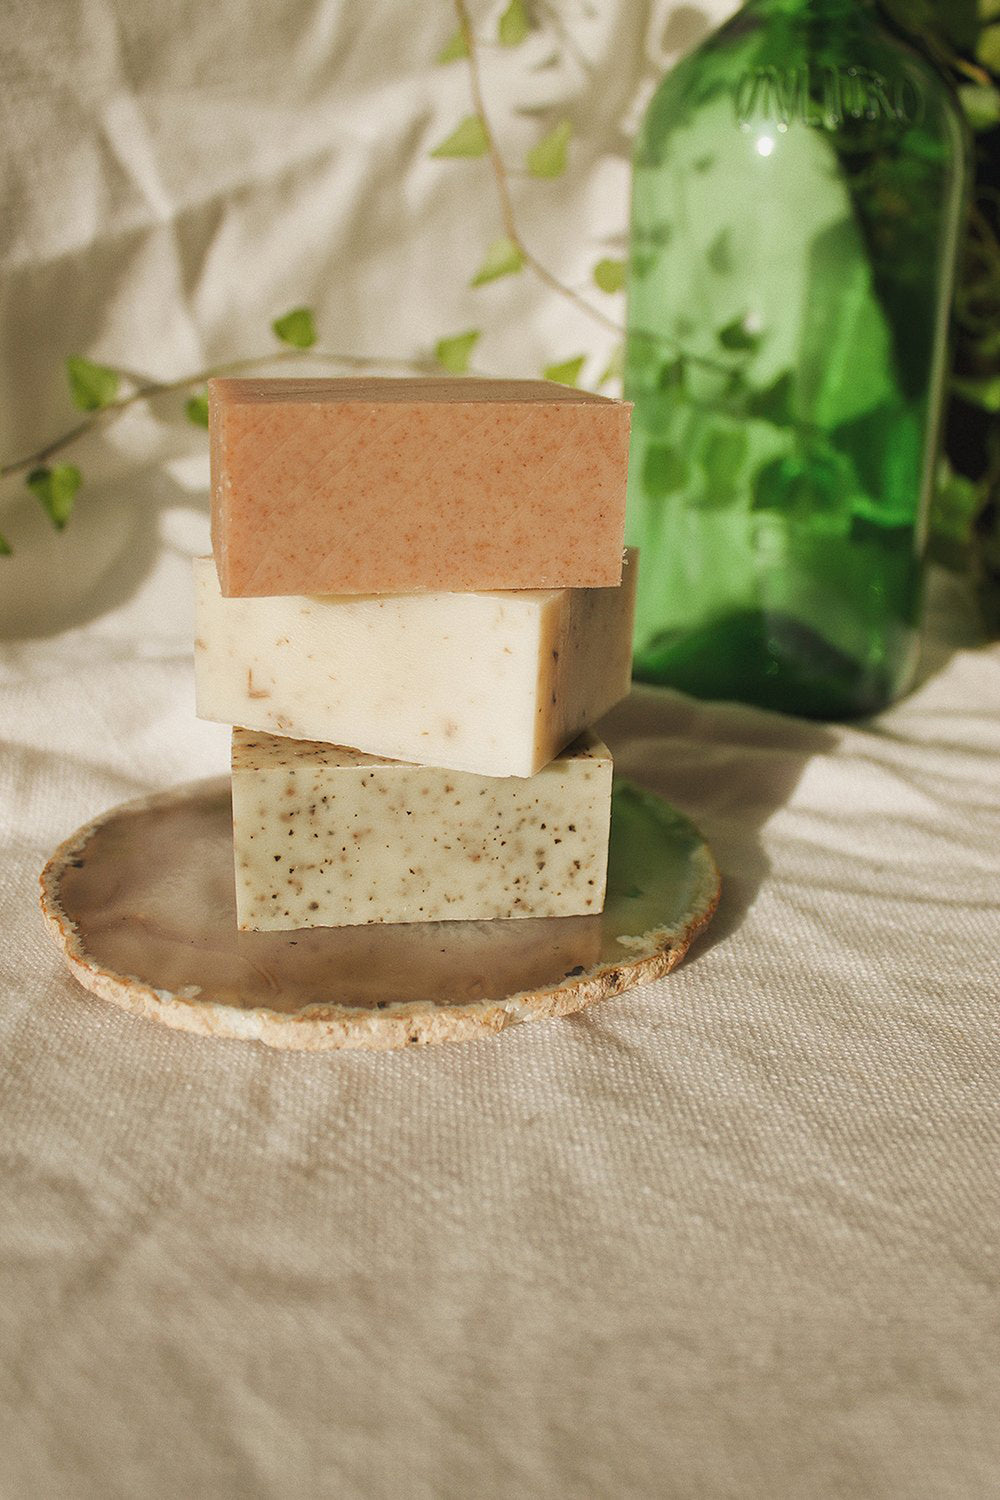 Palermo Rose Geranium + Mandarin Soap 2oz - Whimsy & Row